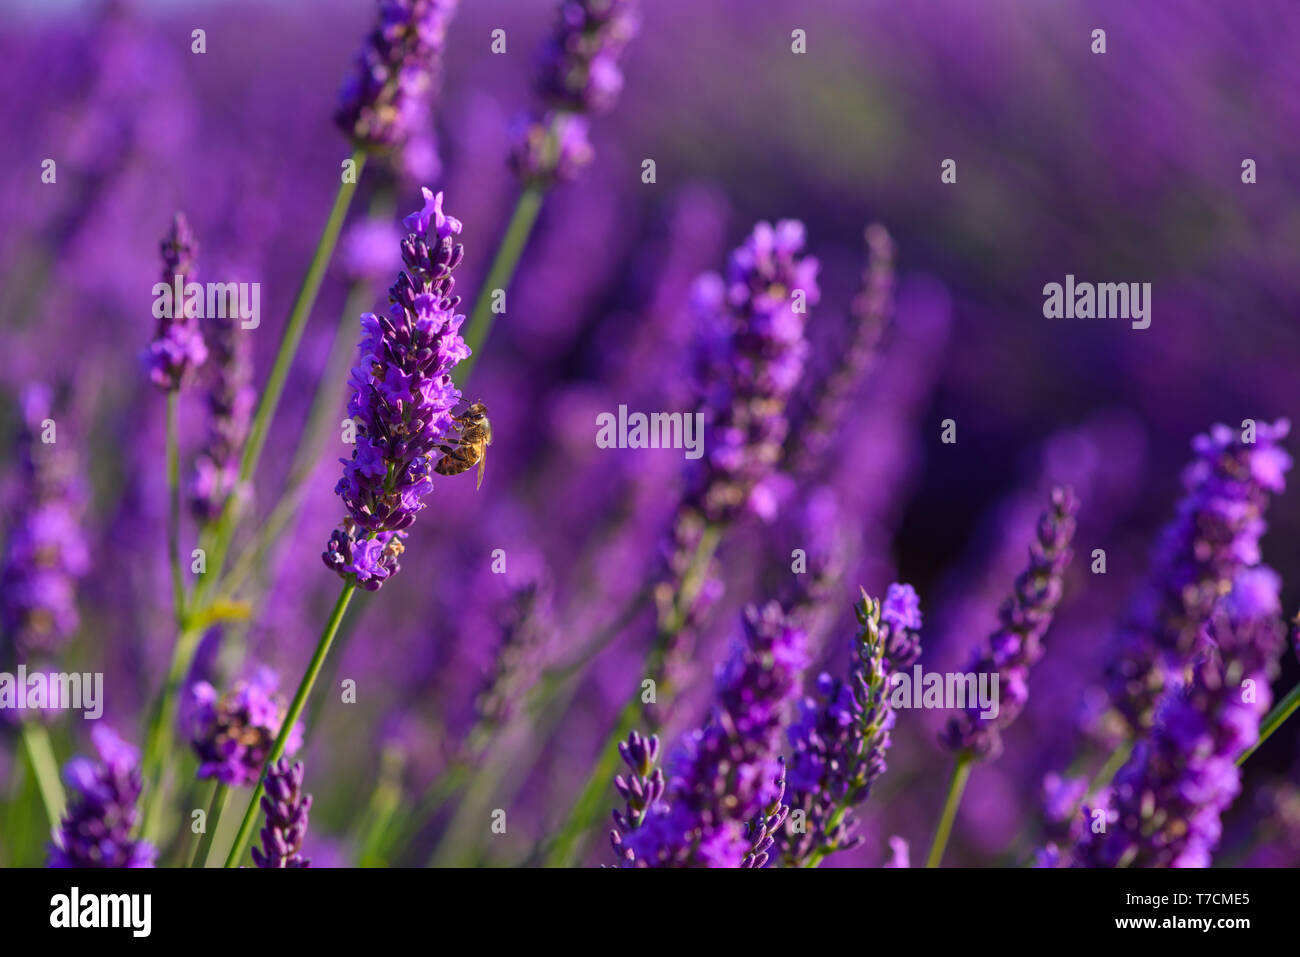 Bee in blossoming lavender flowers feeding on nectar and pollen. Honeybee pollinating lavender bushes on field honey Provence France. - Stock Image